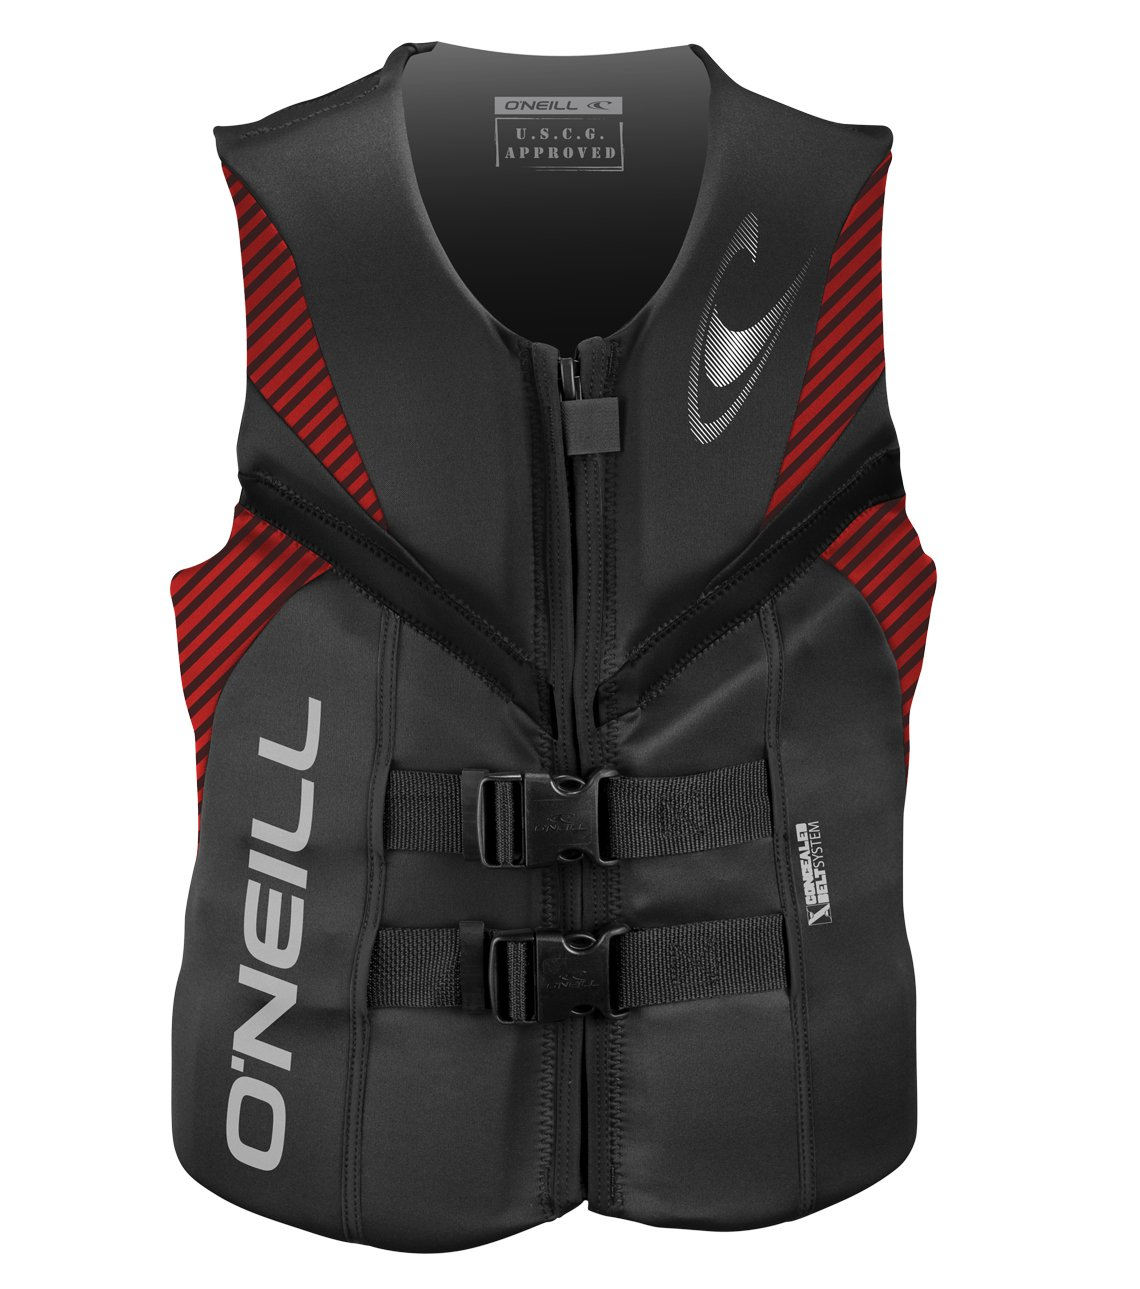 O'Neill   Men's Reactor USCG Life Vest,Graphite/Red/Black,X-Large by O'Neill Wetsuits